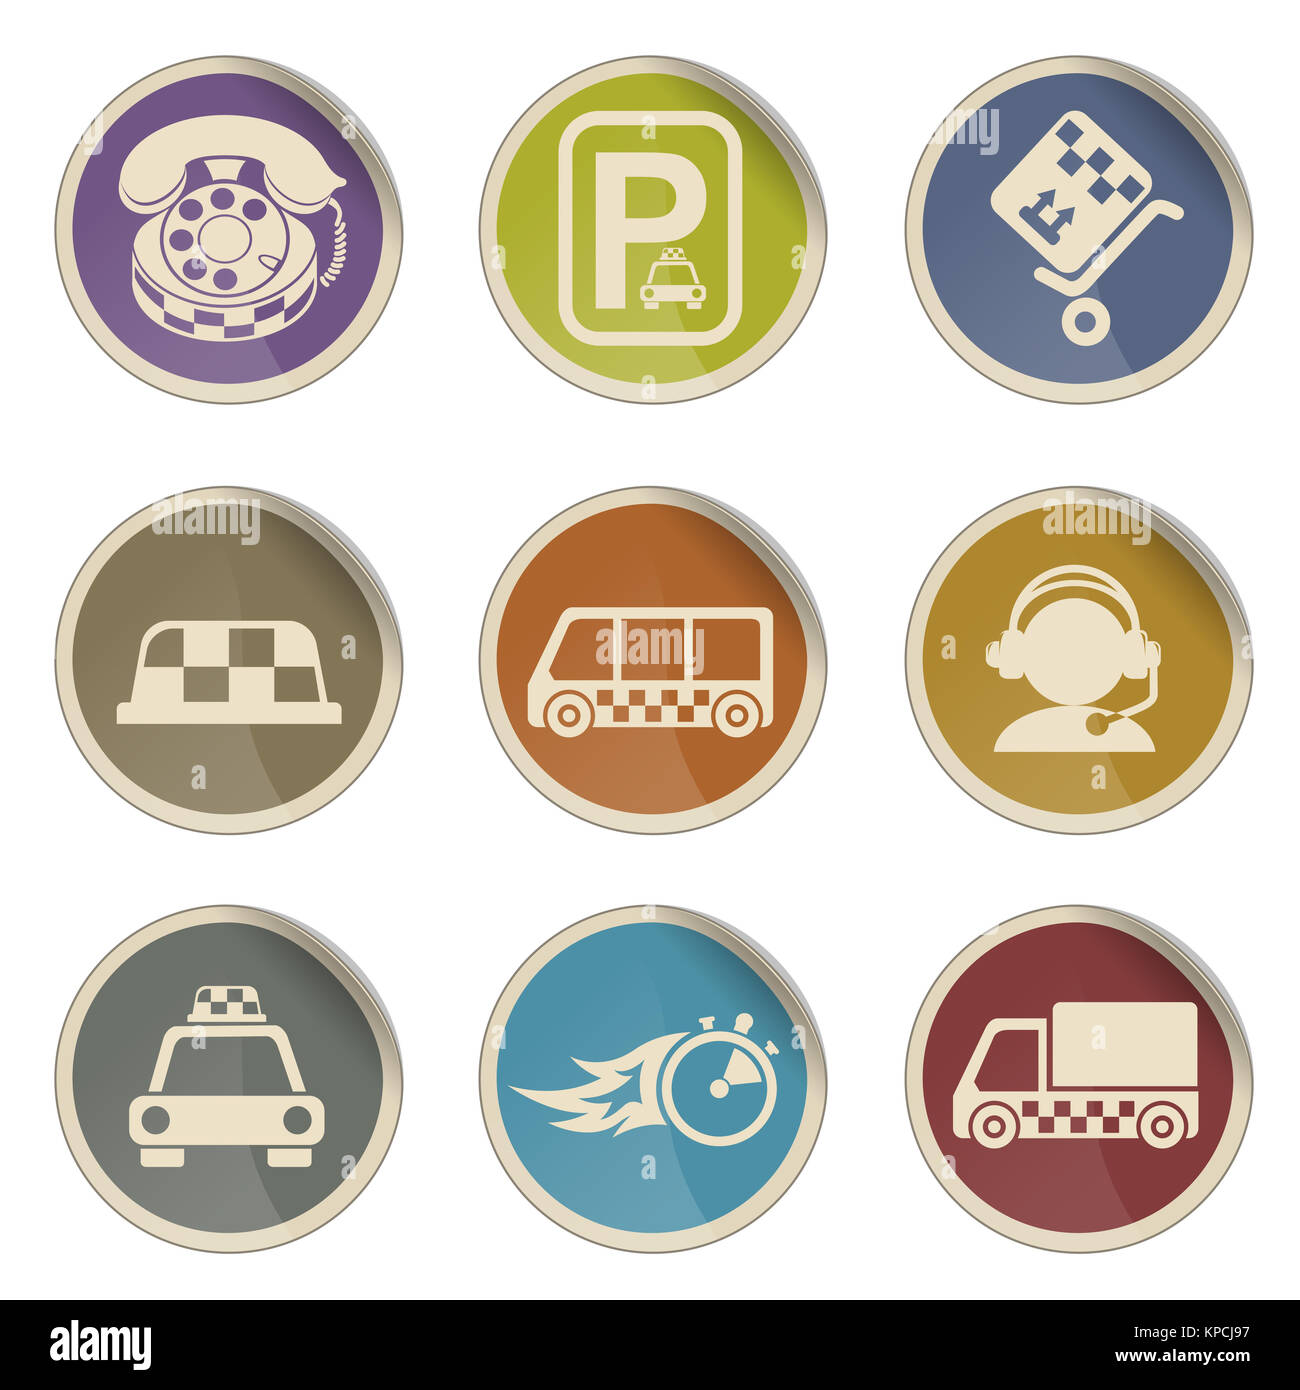 Symbols Of Taxi Services Stock Photo 168693539 Alamy